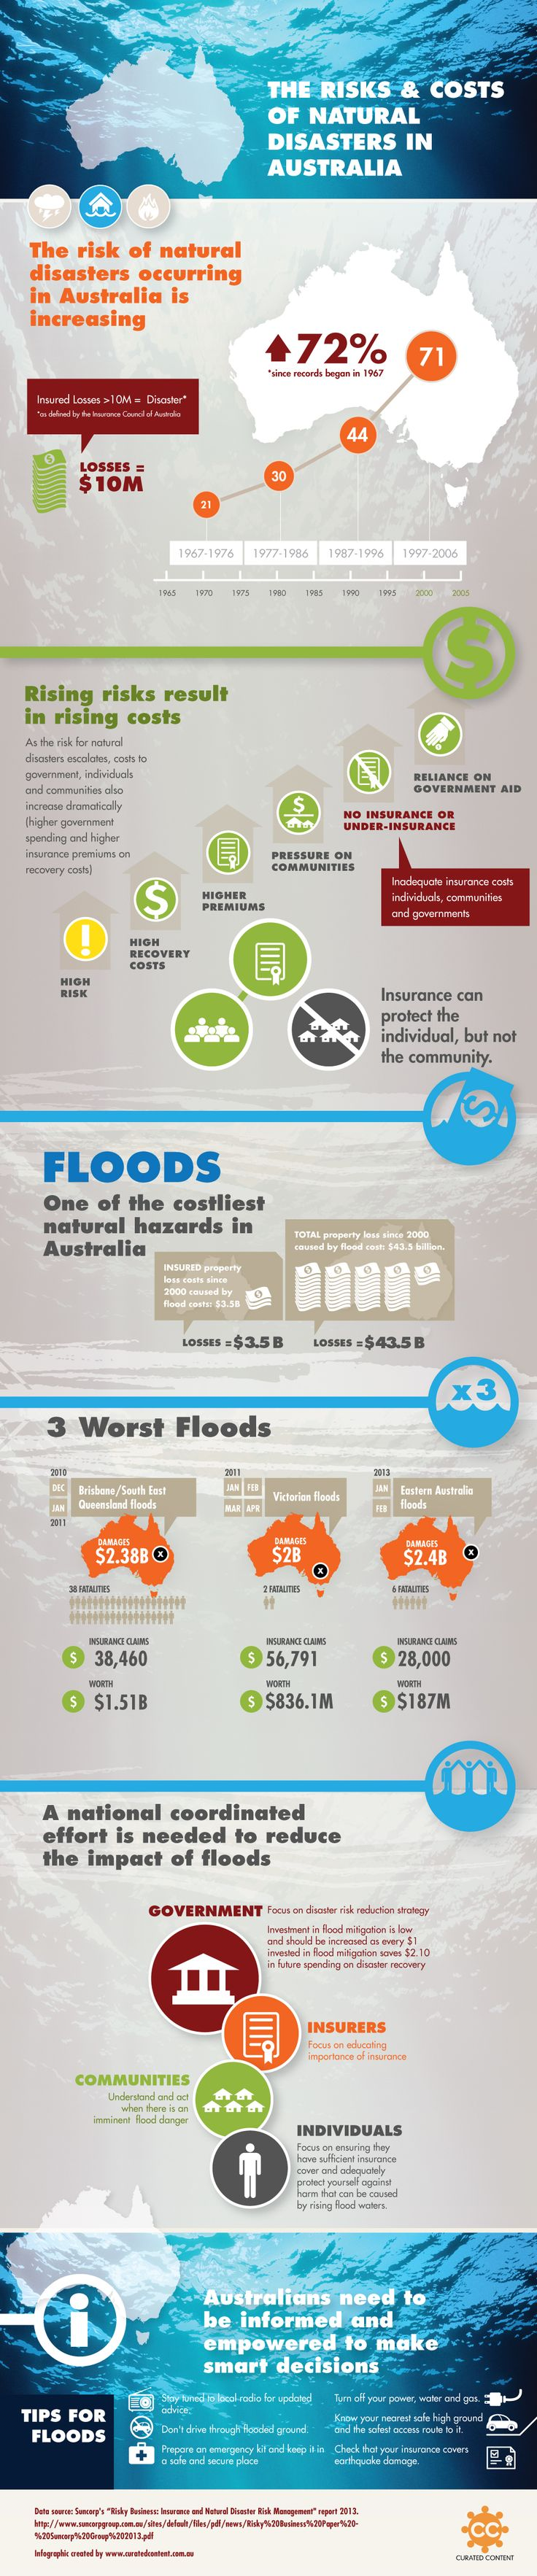 The recent Queensland floods have forced people to look at the impact that floods have on the community and the fact that underinsurance could lead to rising taxes as the government strives to protect its people.